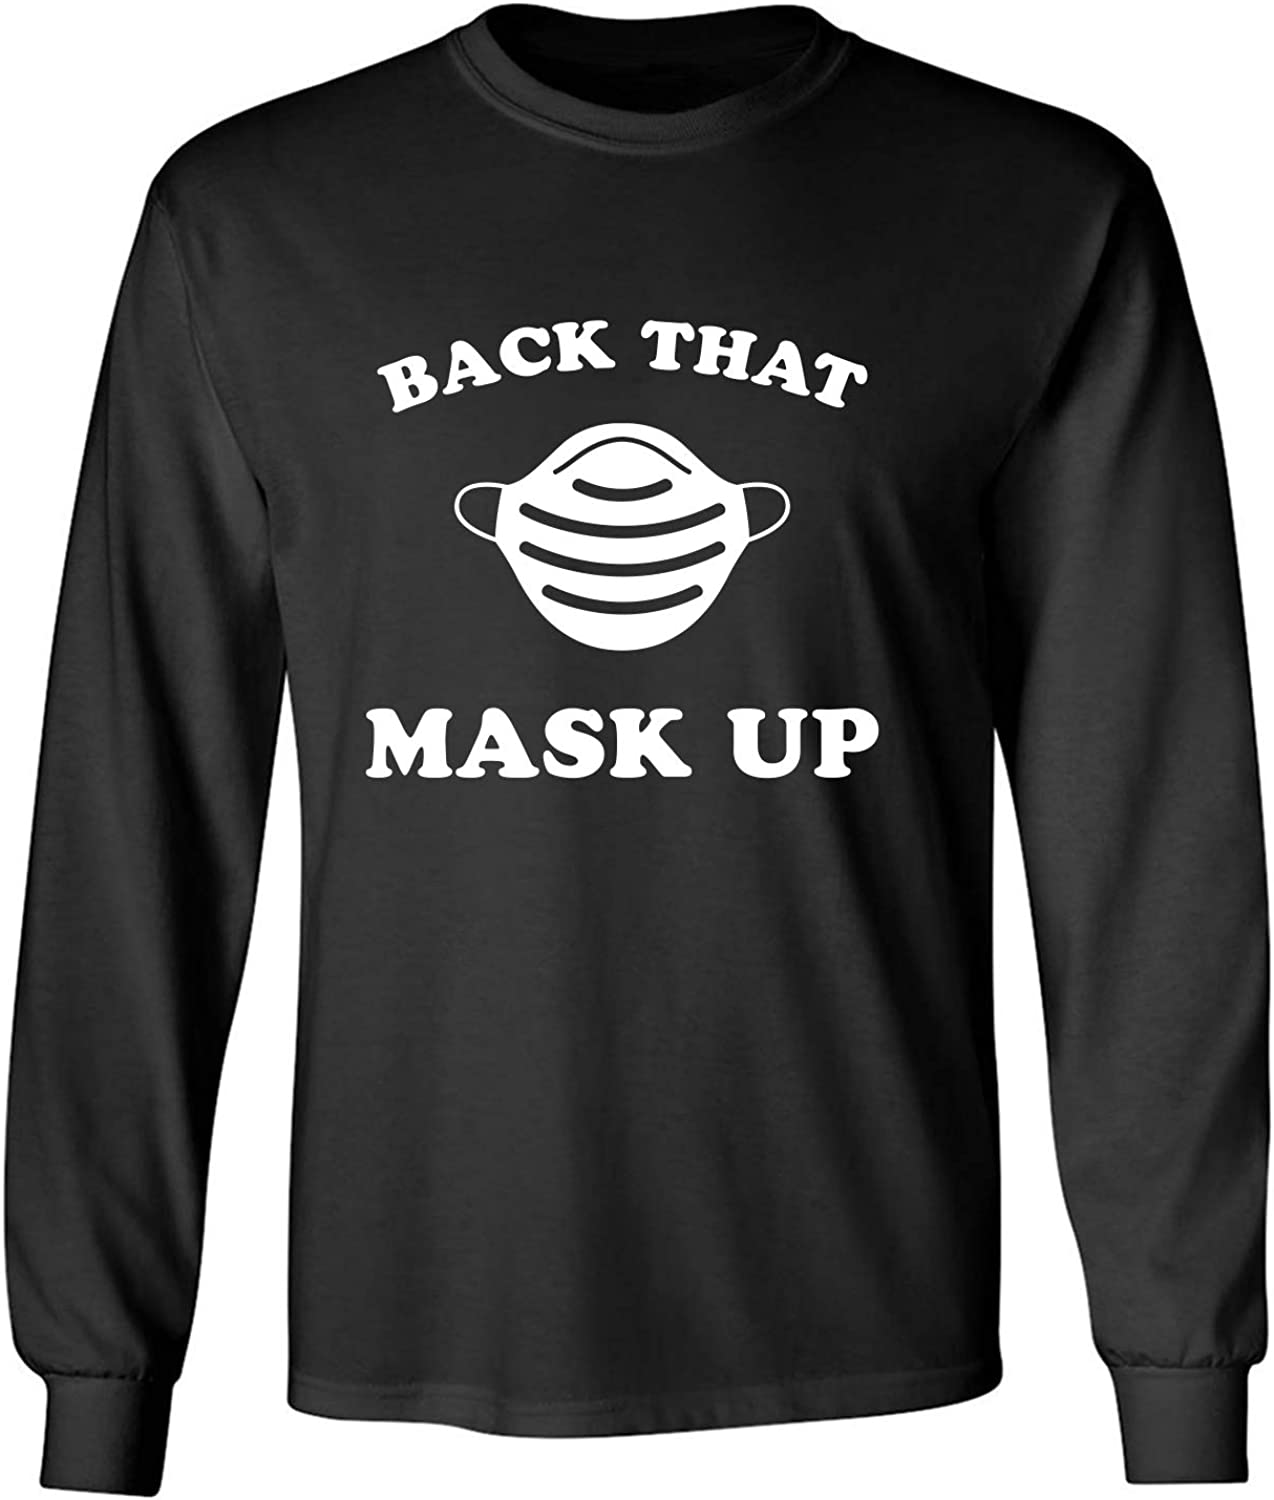 Back That Mask Up Adult Long Sleeve T-Shirt